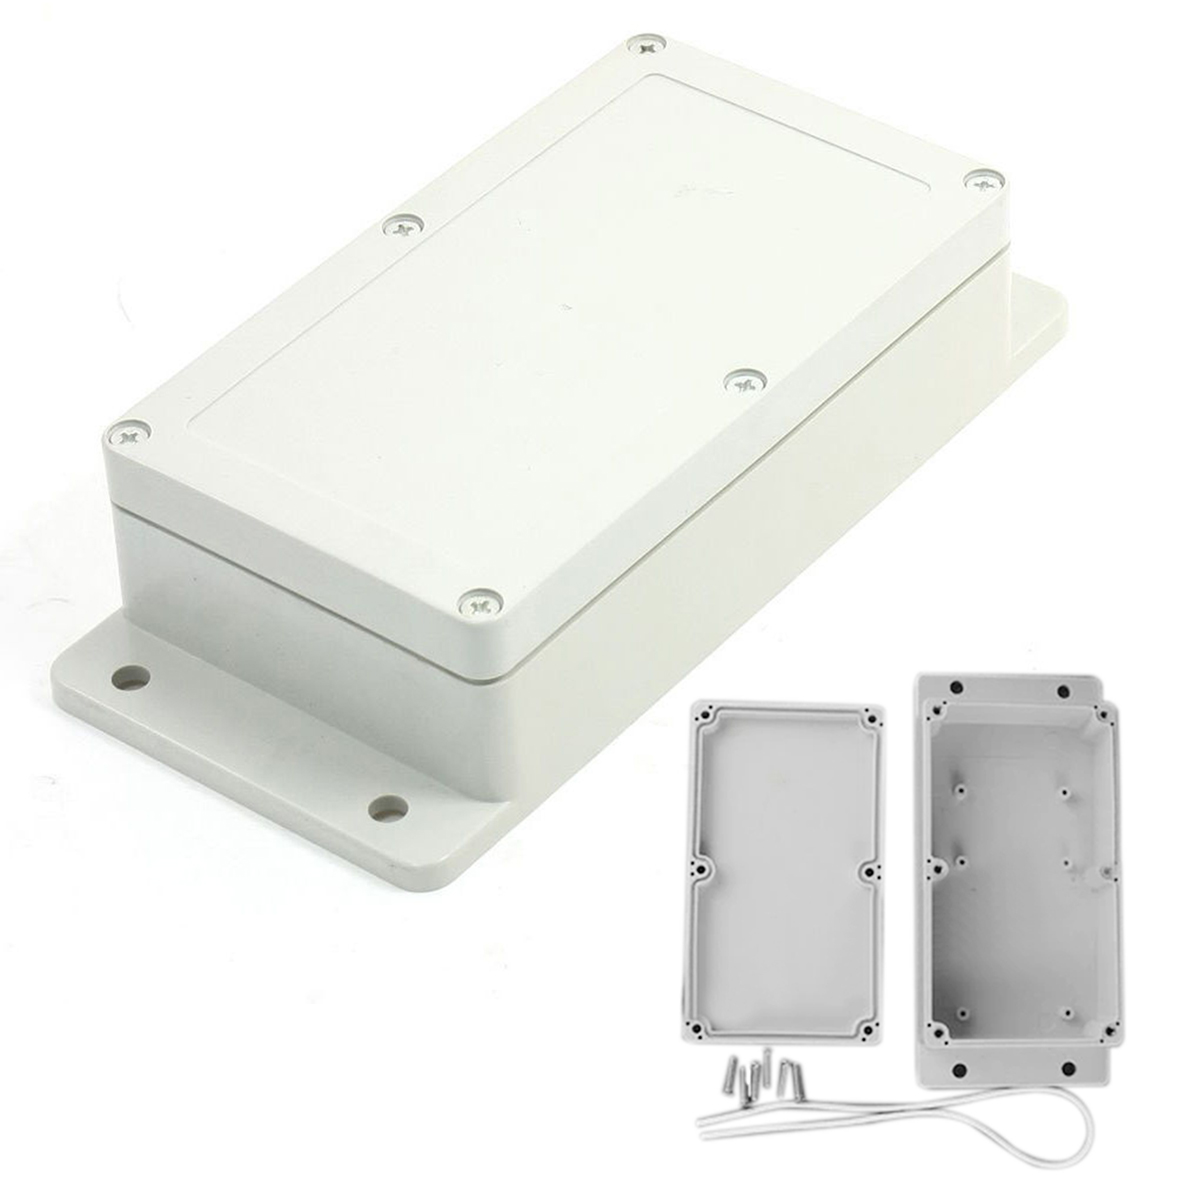 Waterproof Power Junction Box White Plastic Enclosure Case 158mmx90mmx46mm For Electronic Project Instrument цена